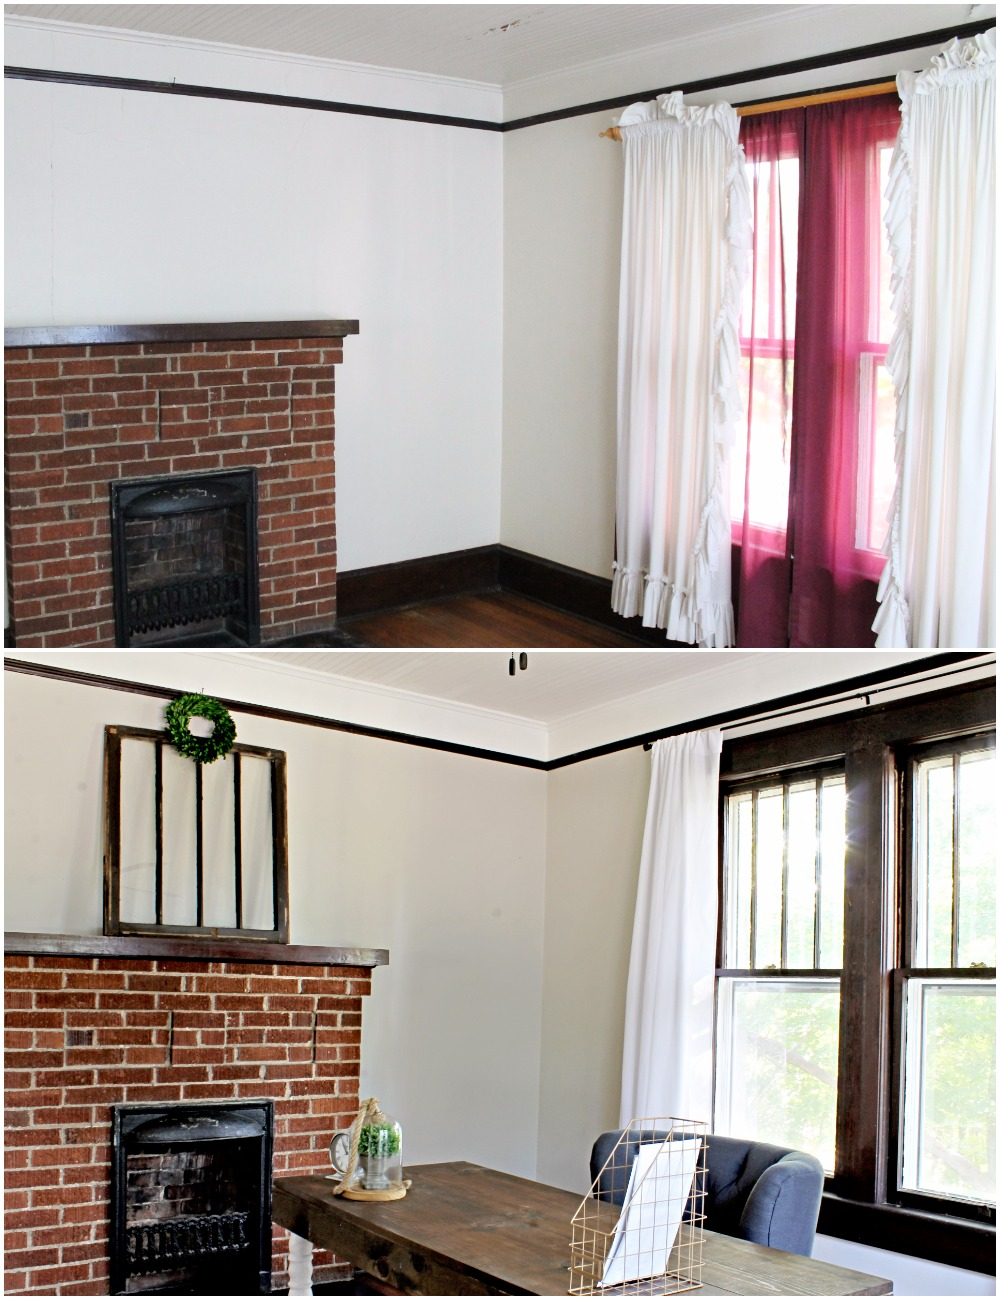 House Flipping Before and Afters - Office Staging Ideas, Wood Trim Paint Colors - Sherwin Williams Repose Gray 10